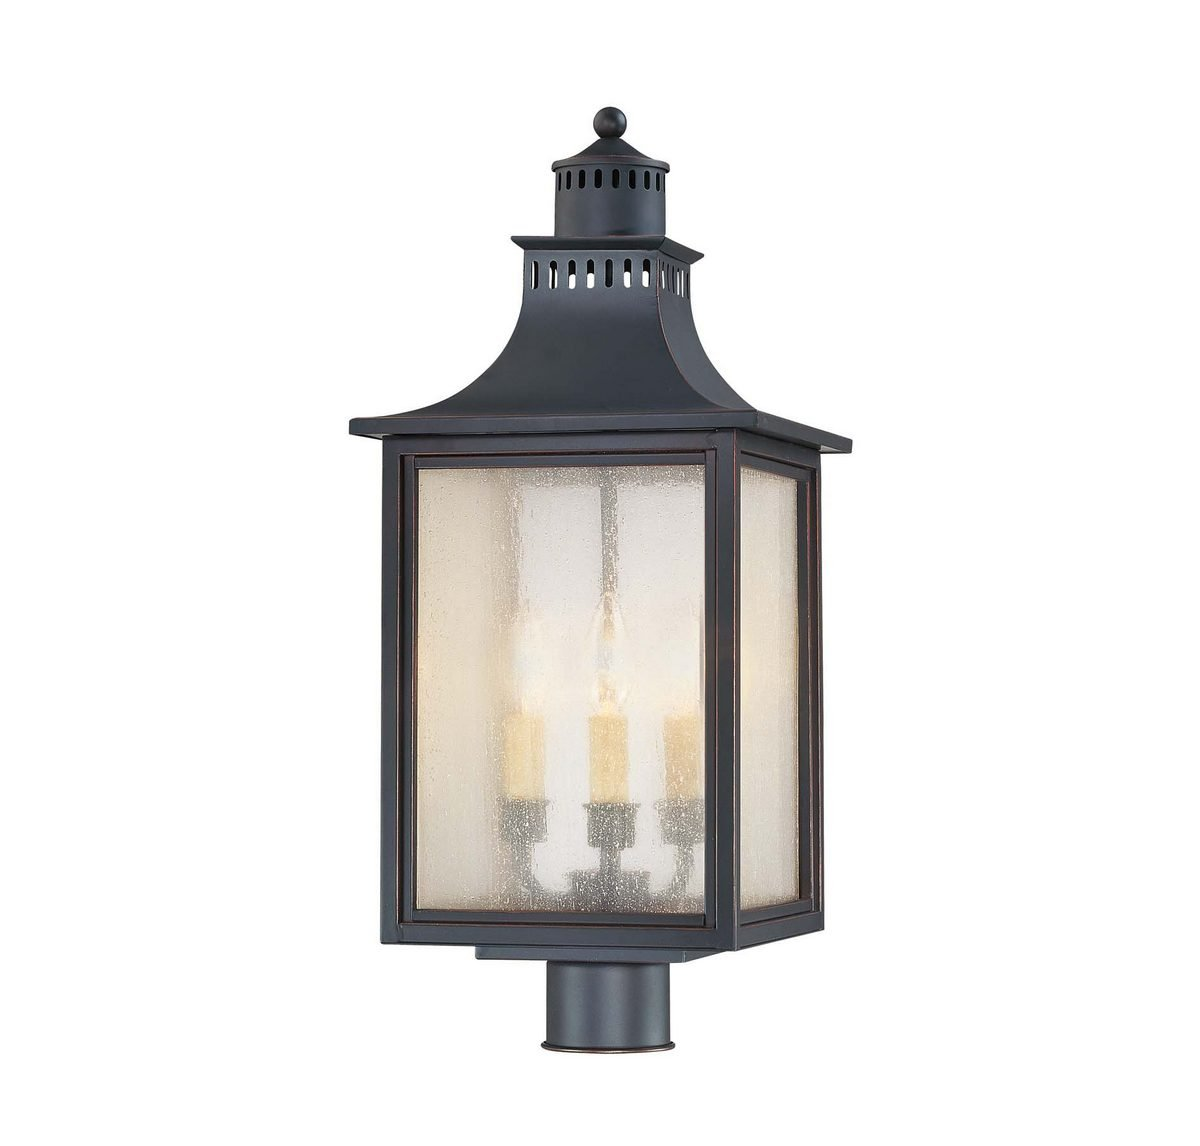 Savoy House Lighting 5-255-25  Monte Grande Collection 3-Light Outdoor Post Mount Lantern, Slate Finish with Pale Cream Seeded Glass by Savoy House Lighting